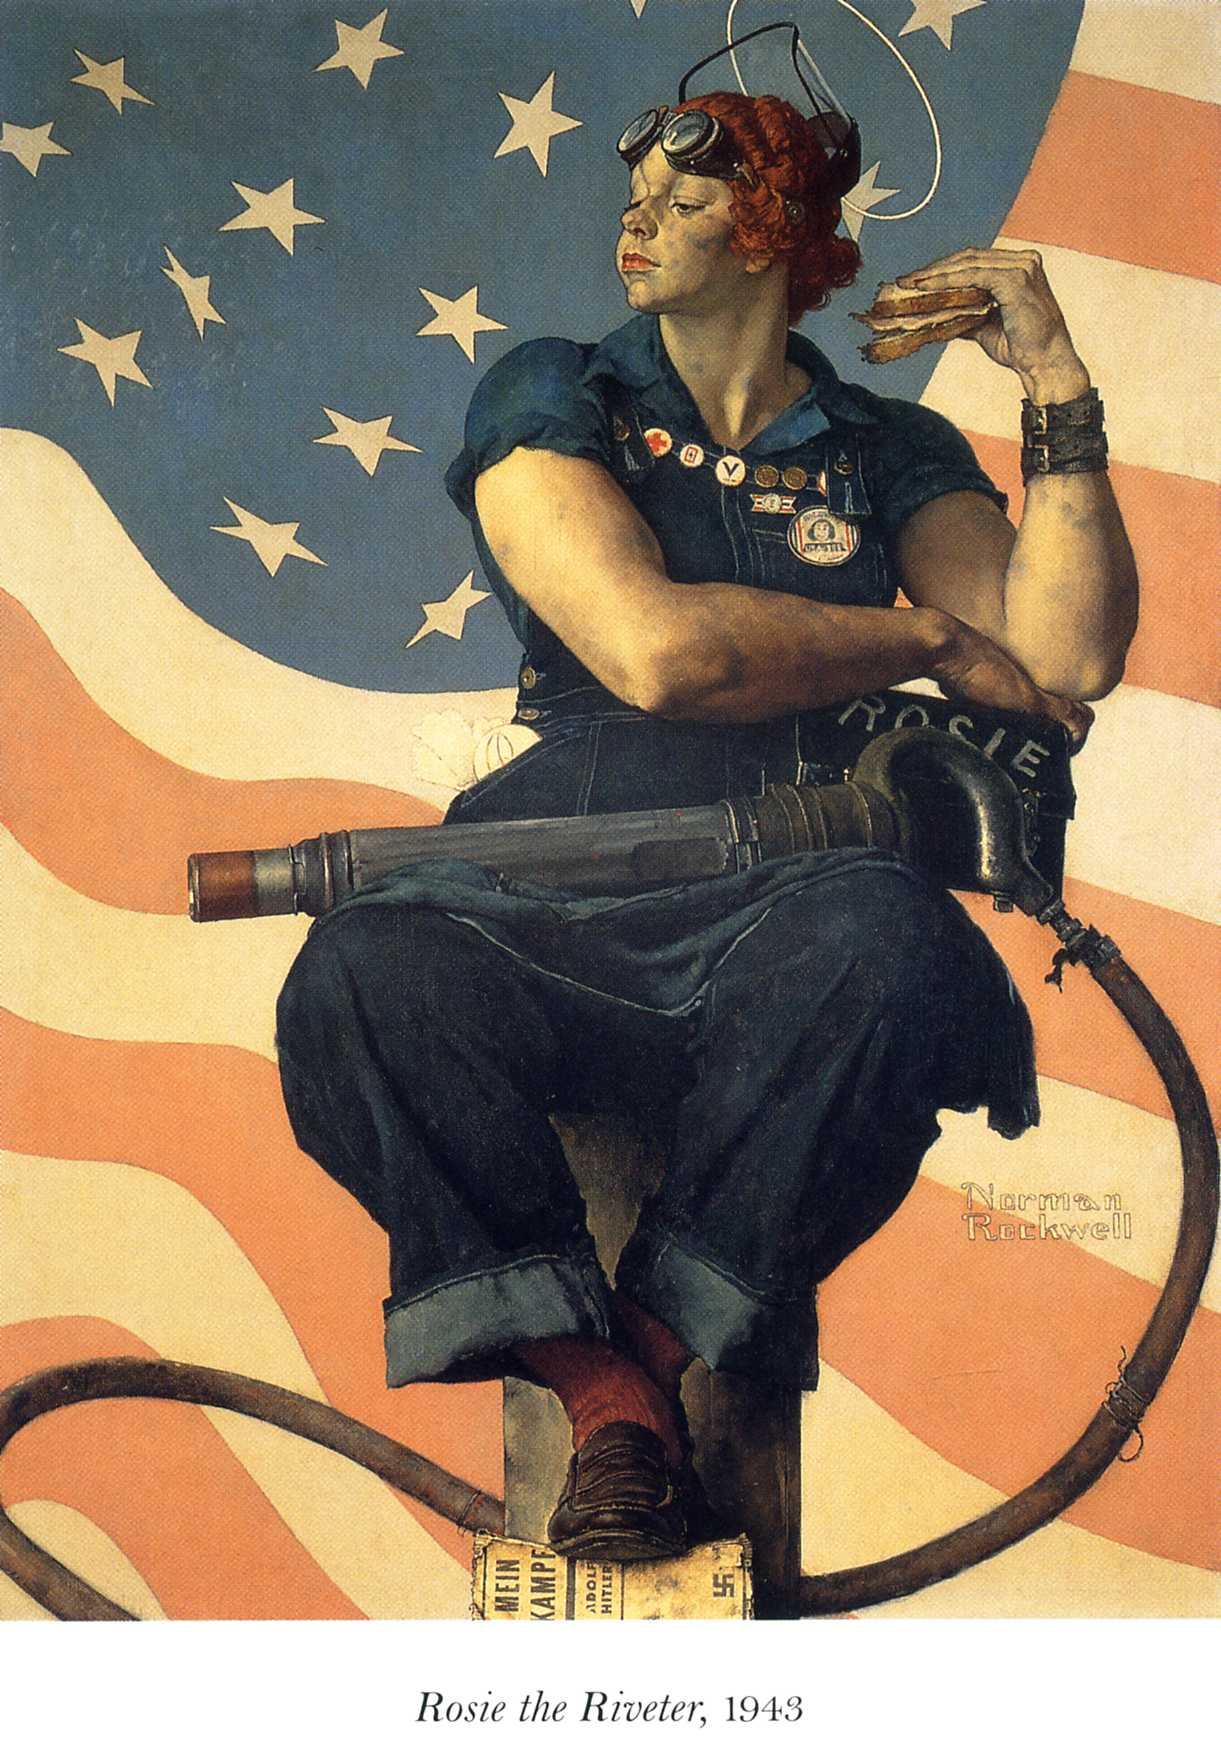 Rosie the Riveter, 1943